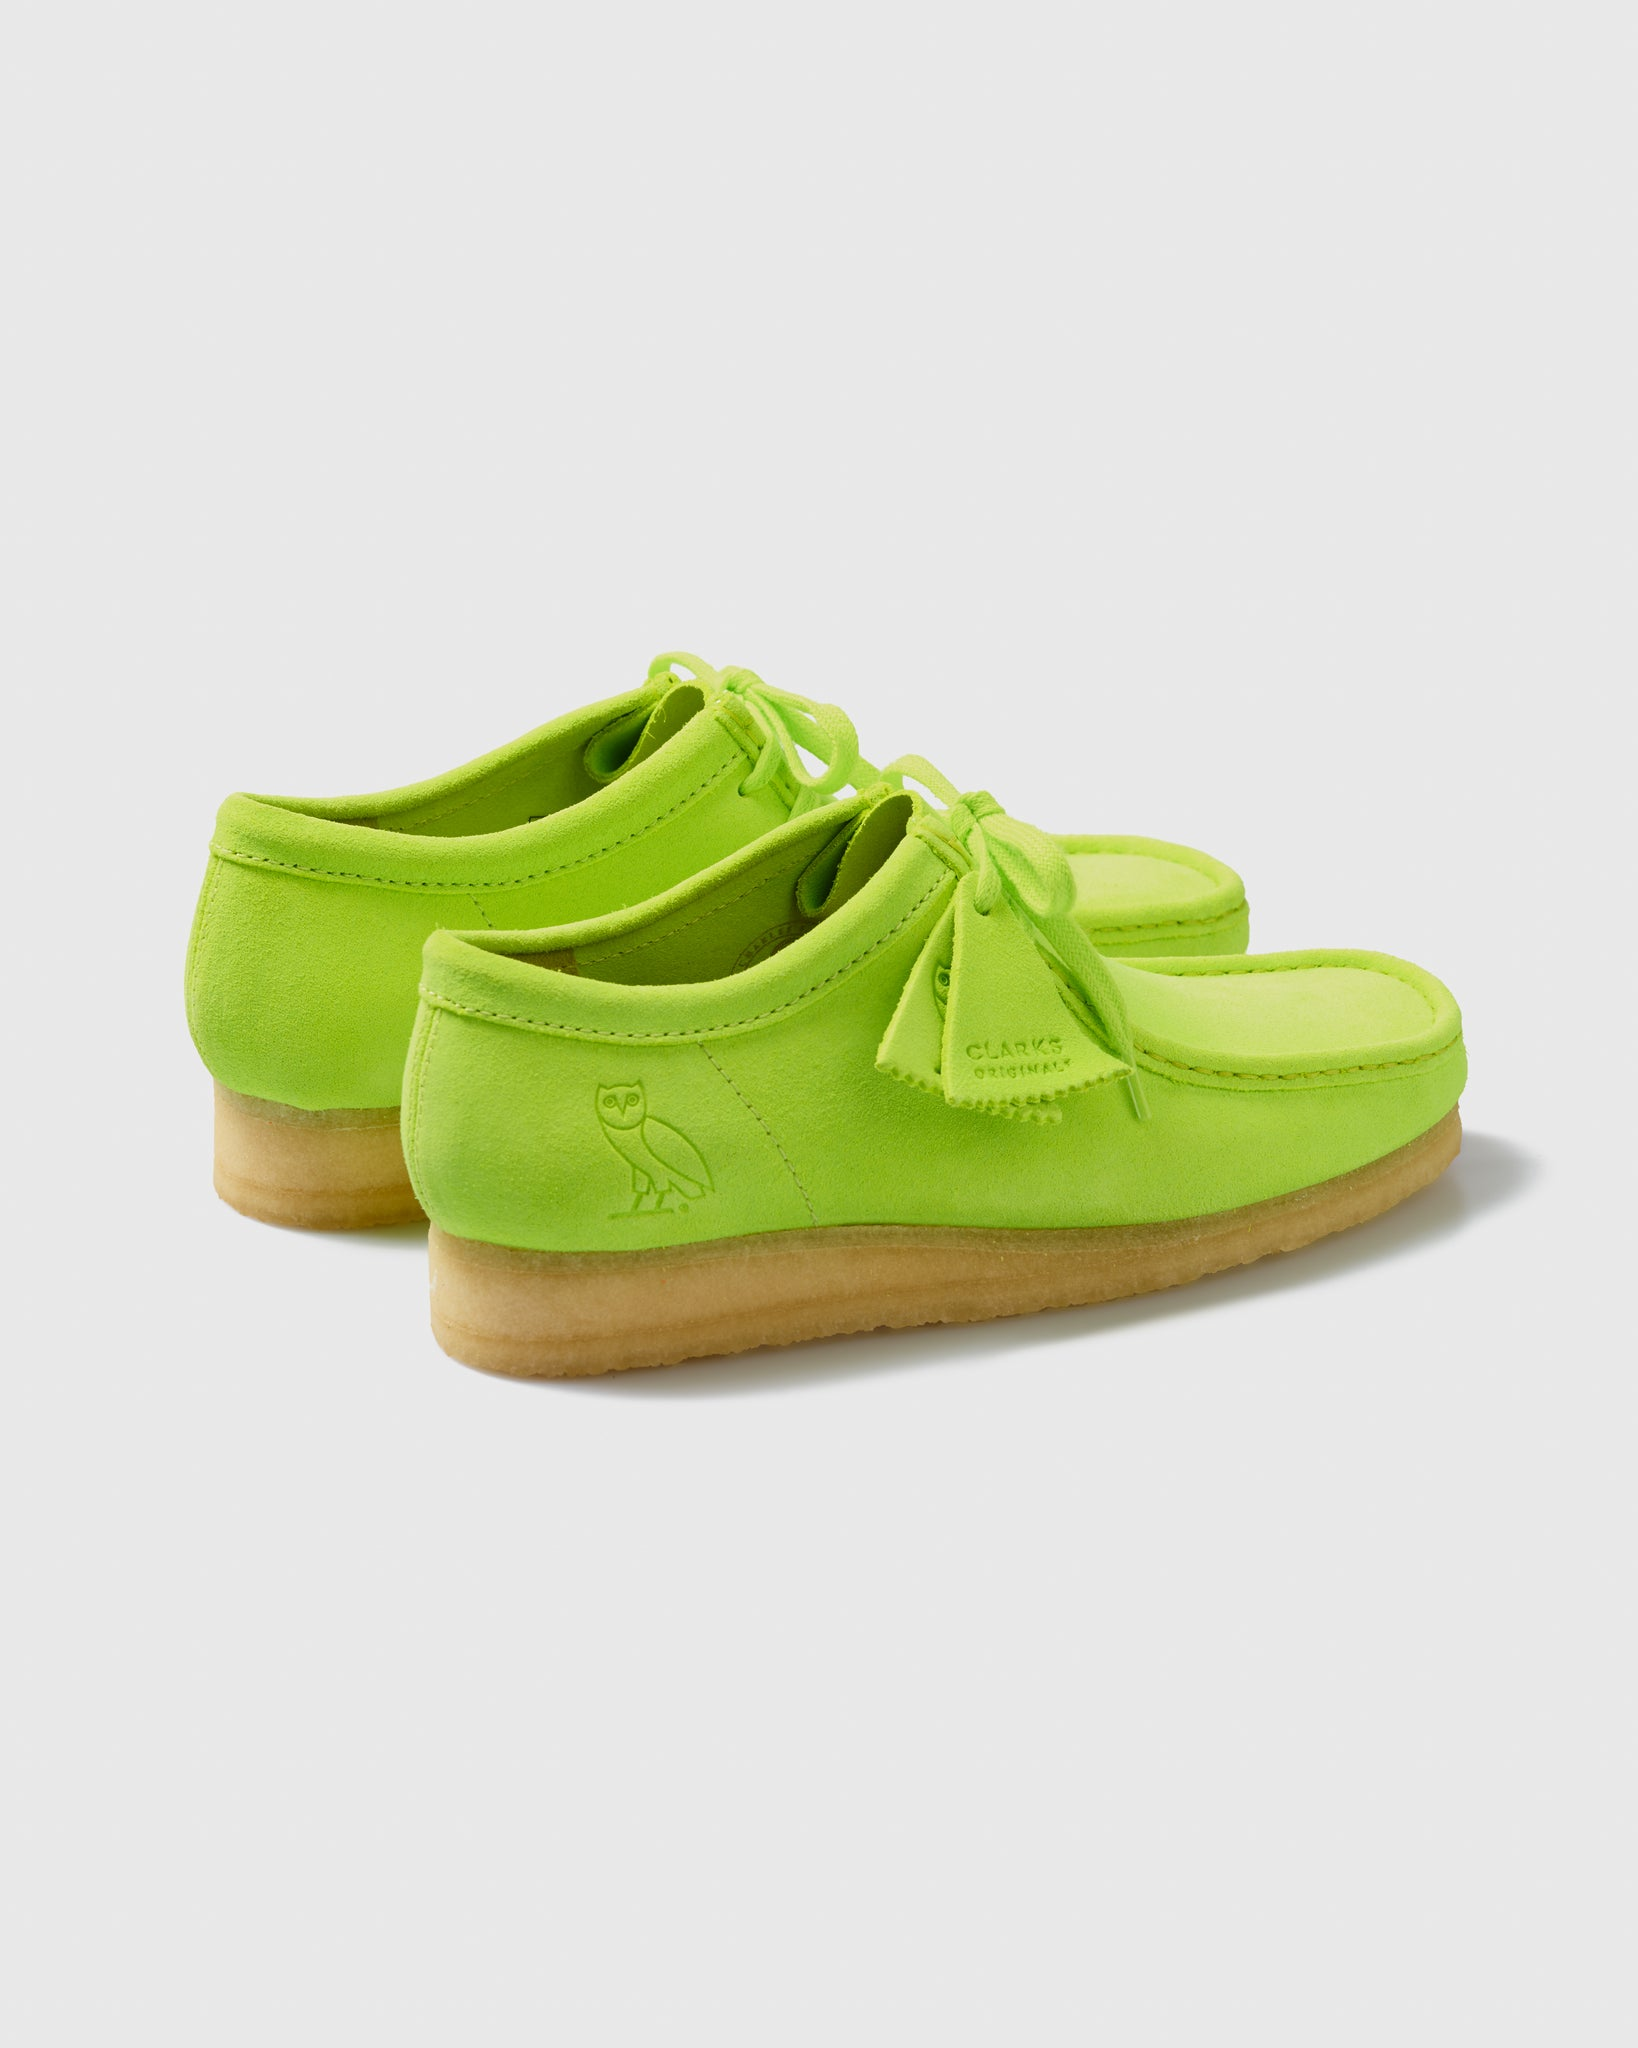 OVO x CLARKS ORIGINALS WALLABEE - LIME IMAGE #2